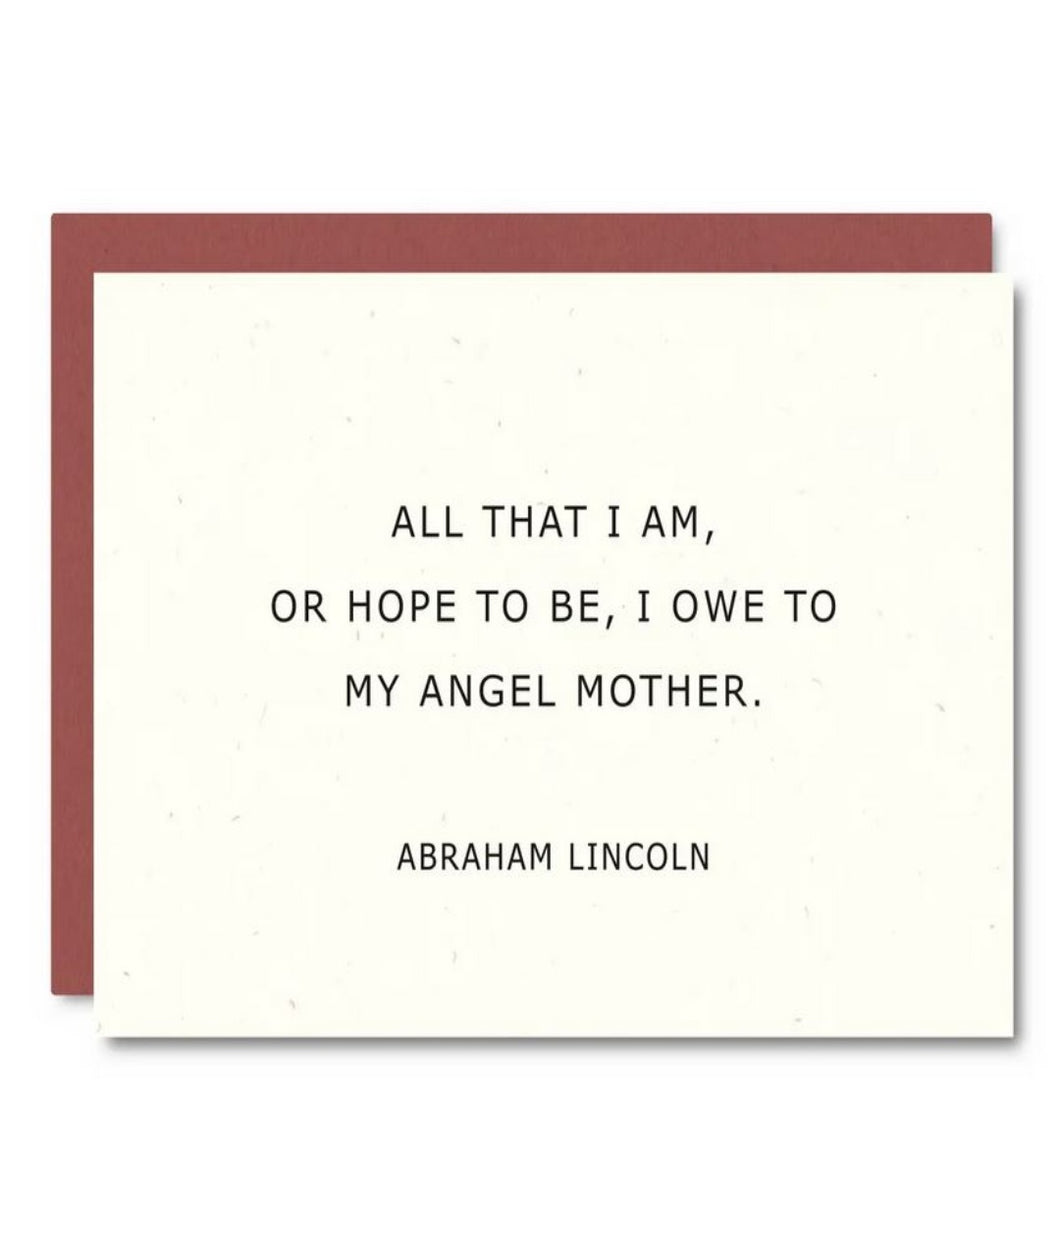 Pictured against a white background is a white card with text that quotes Abraham Lincoln. It says,